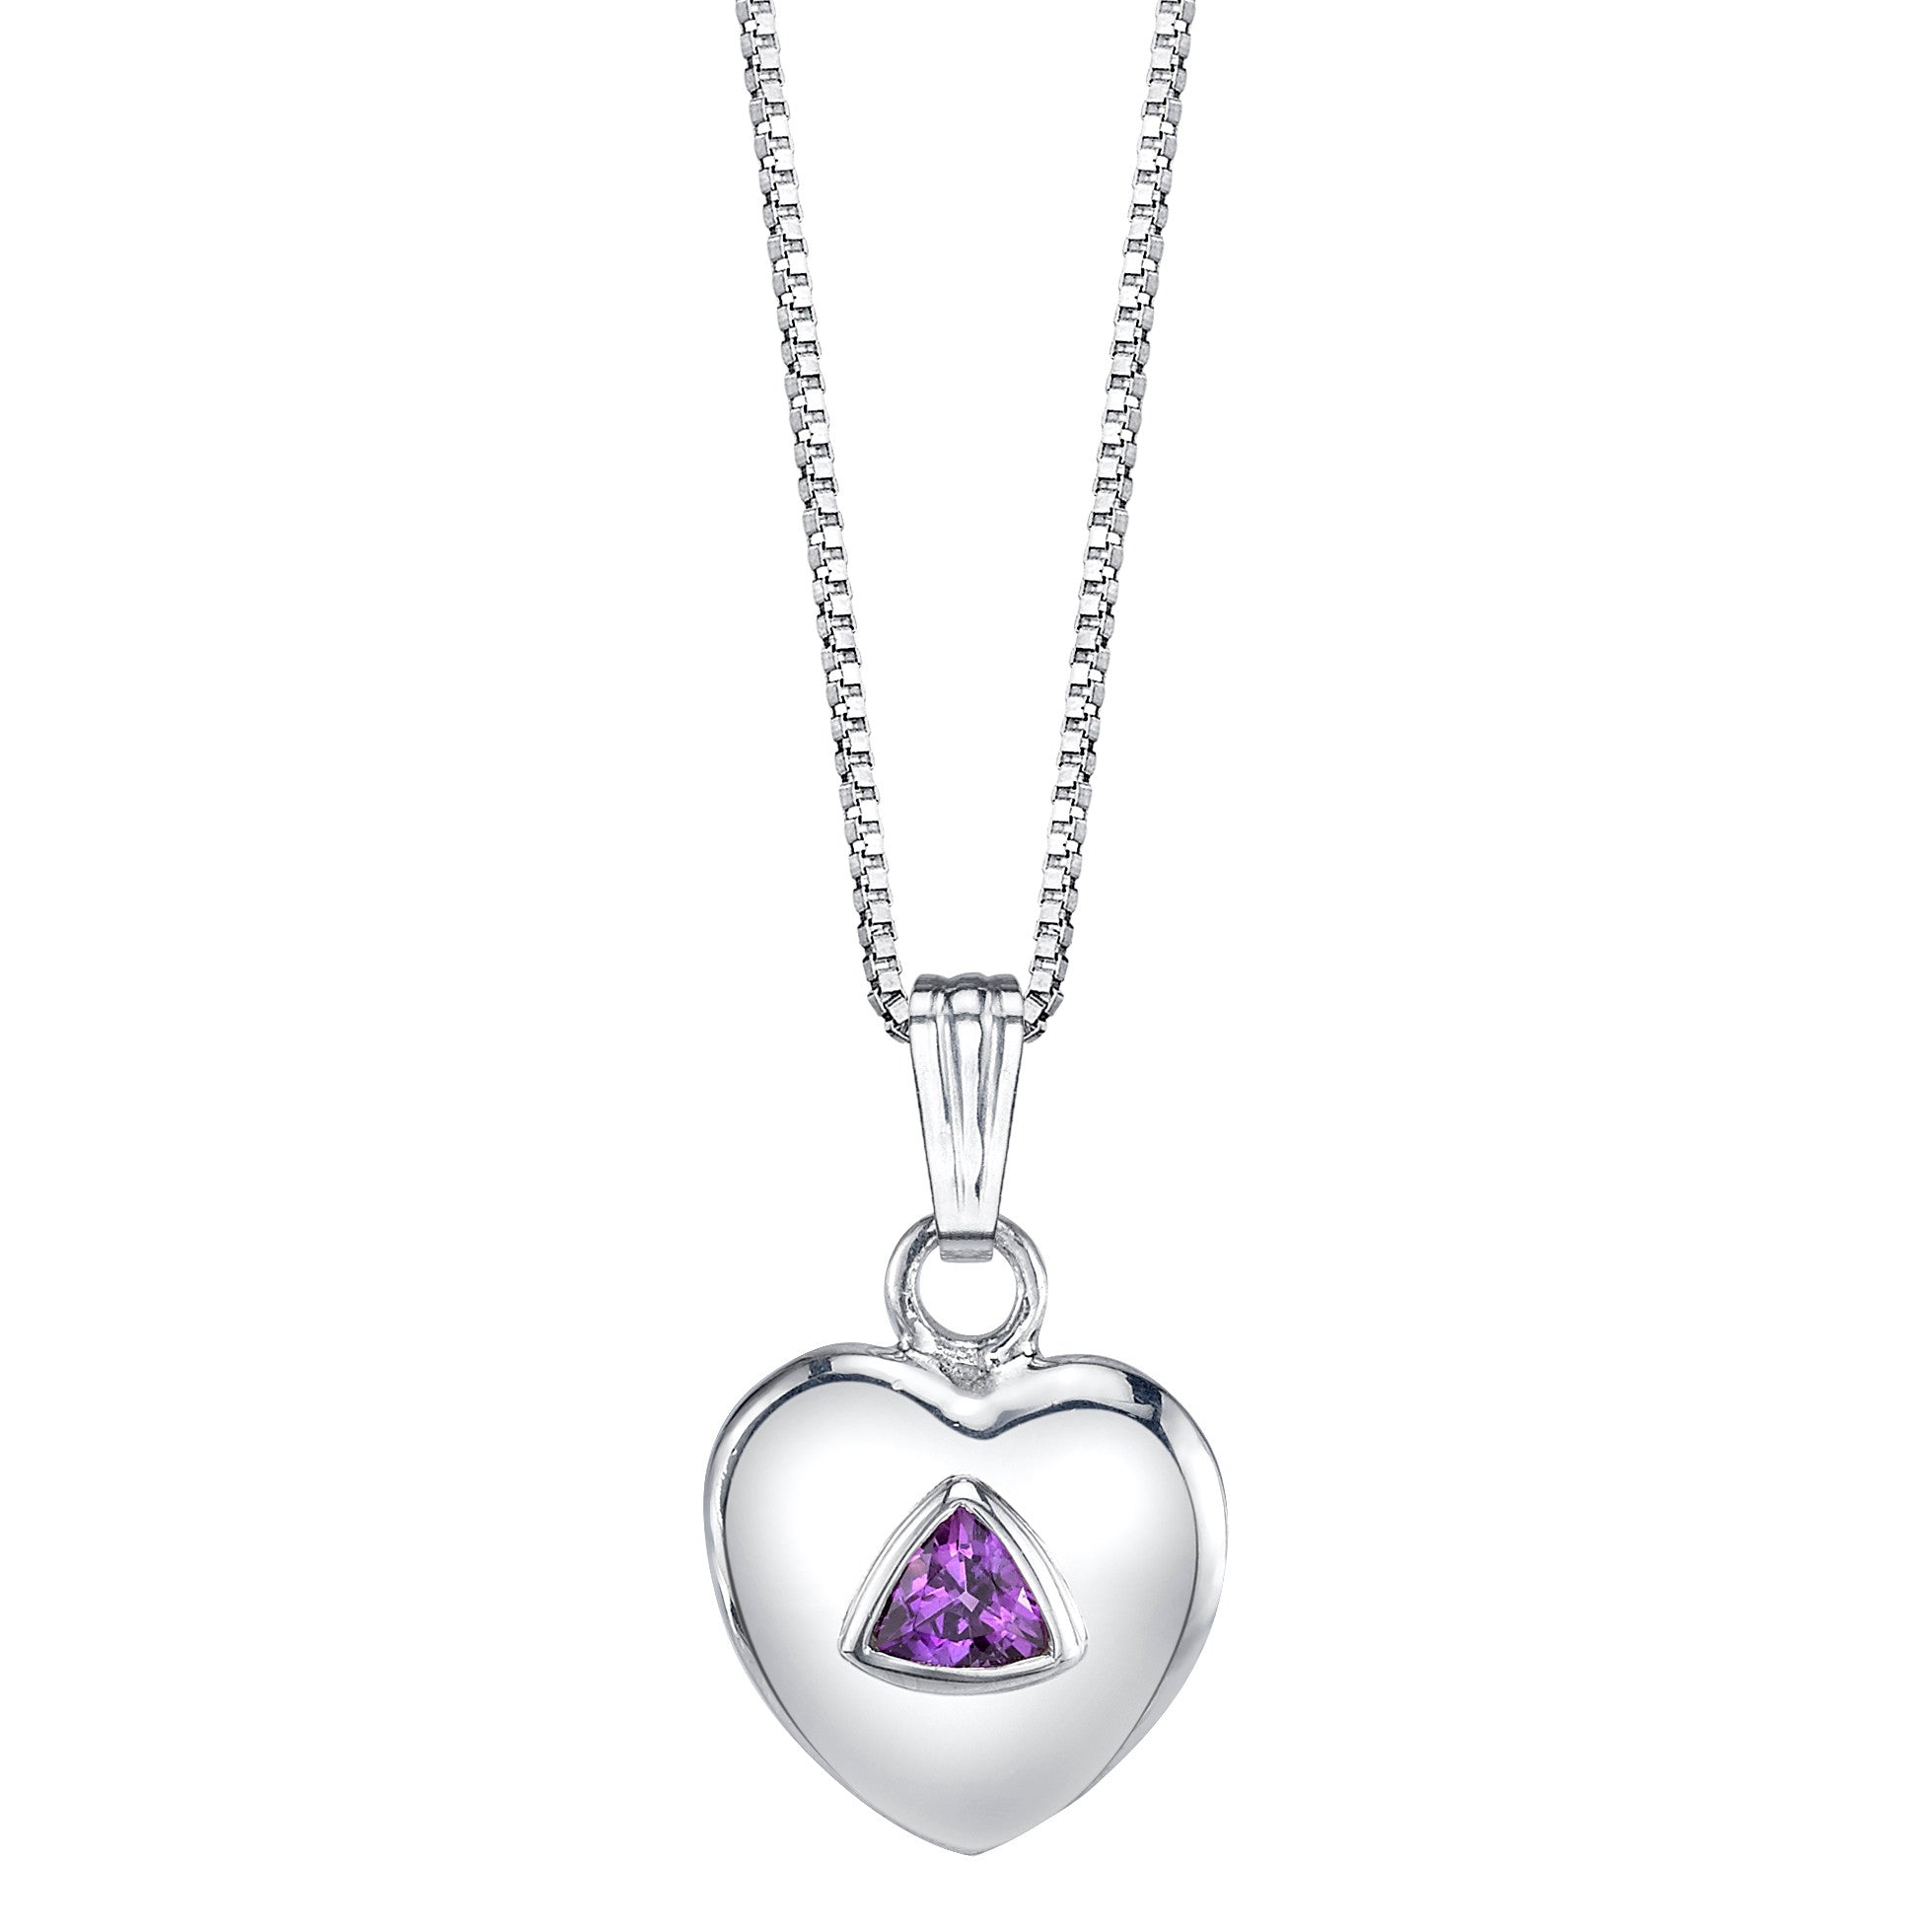 Bezel Set Trillion Heart Pendant